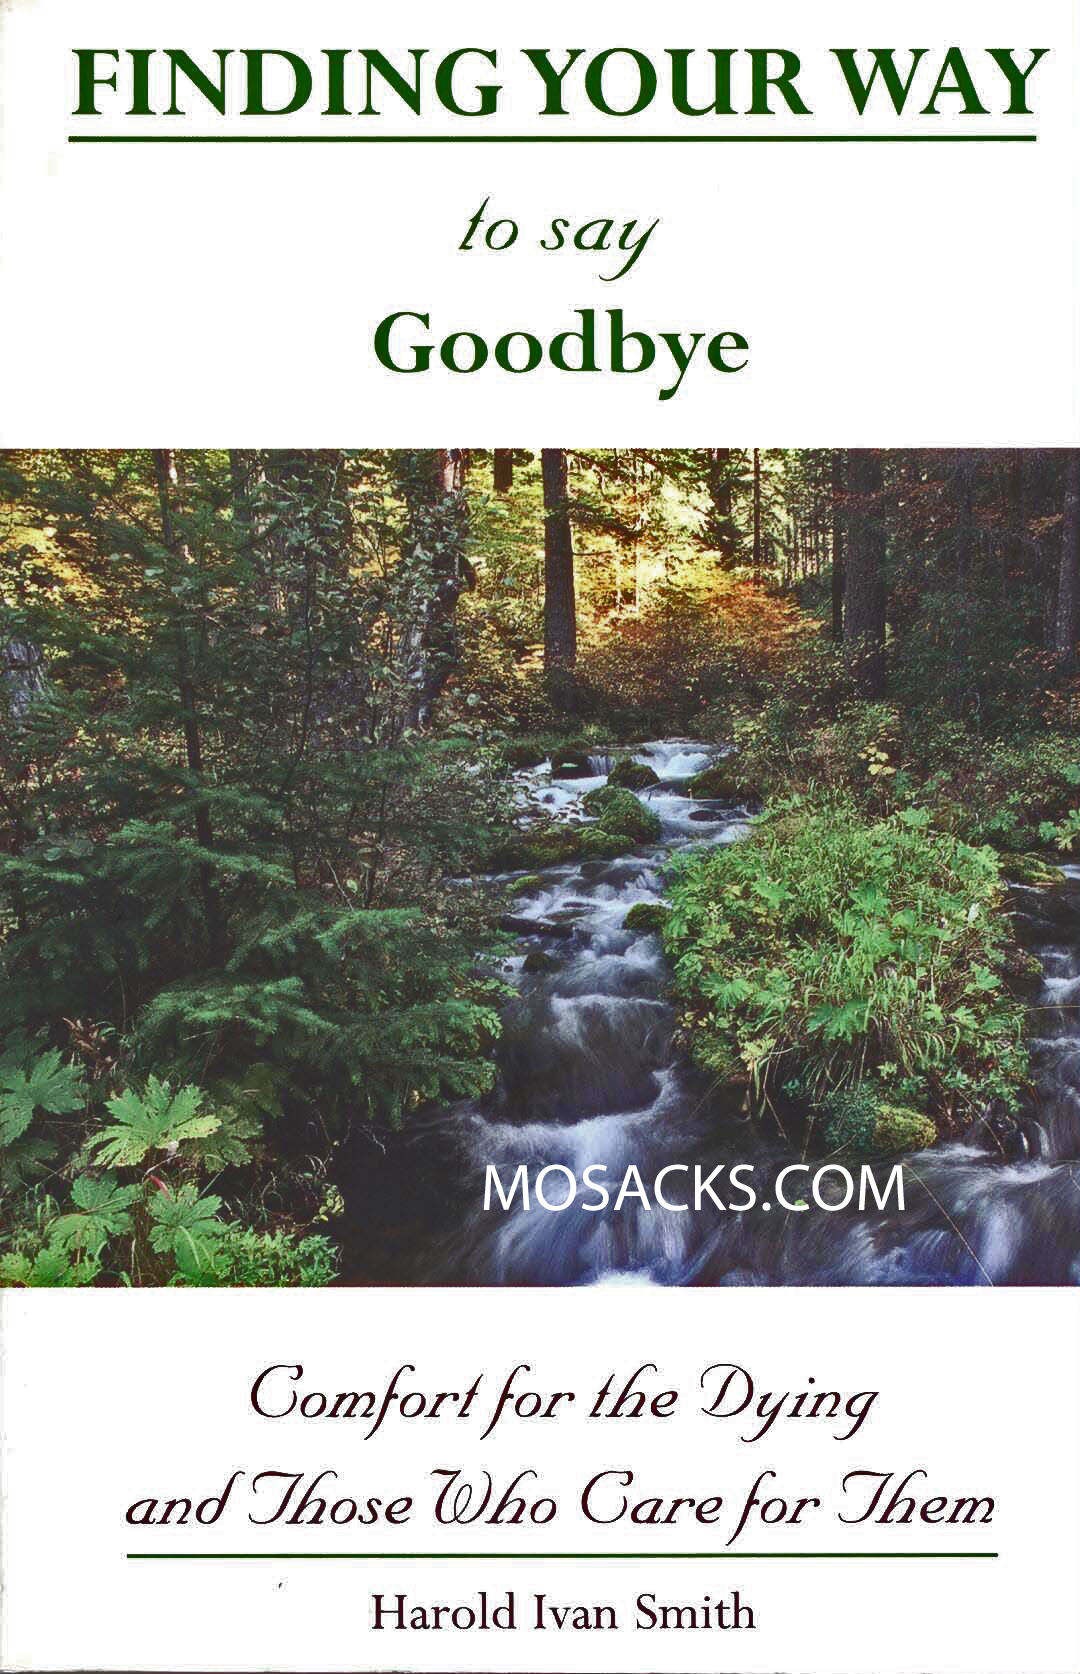 Finding Your Way To Say Goodbye by Harold Ivan Smith 9780877939757